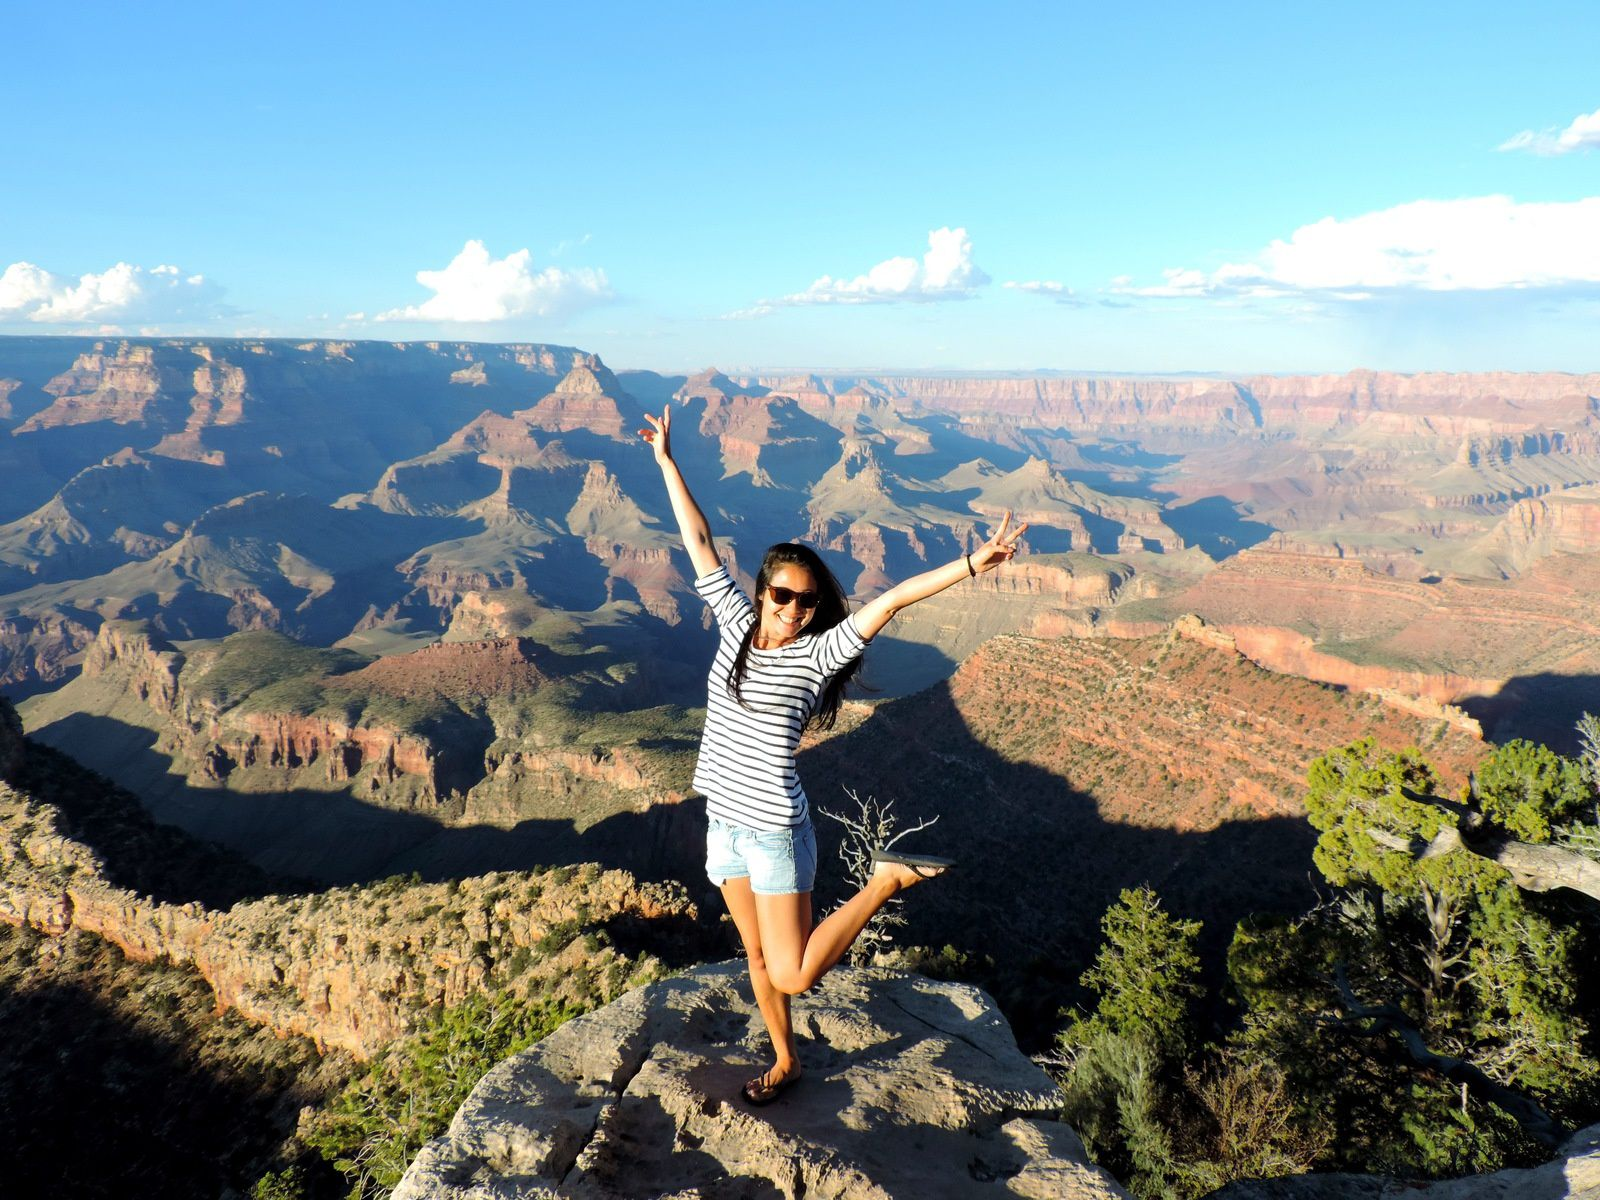 Grand Canyon - Day 14